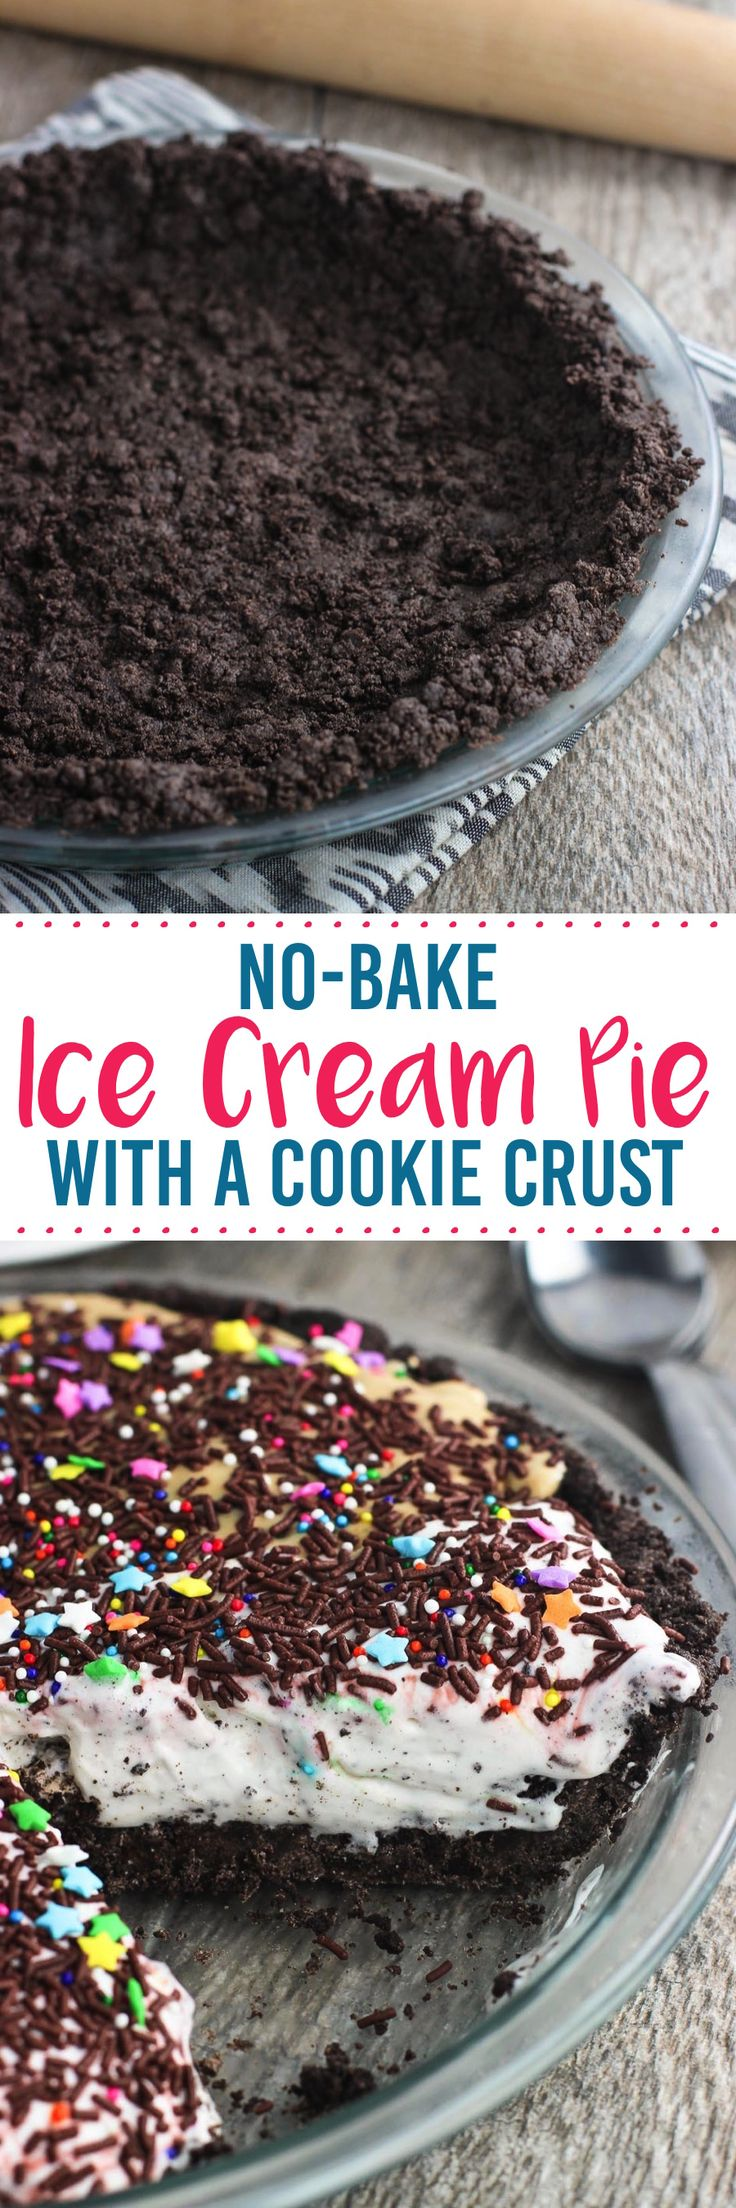 This no-bake ice cream pie is super simple + customizable! Oreo cookies form the base, which is filled with one or more of your favorite ice cream flavors.